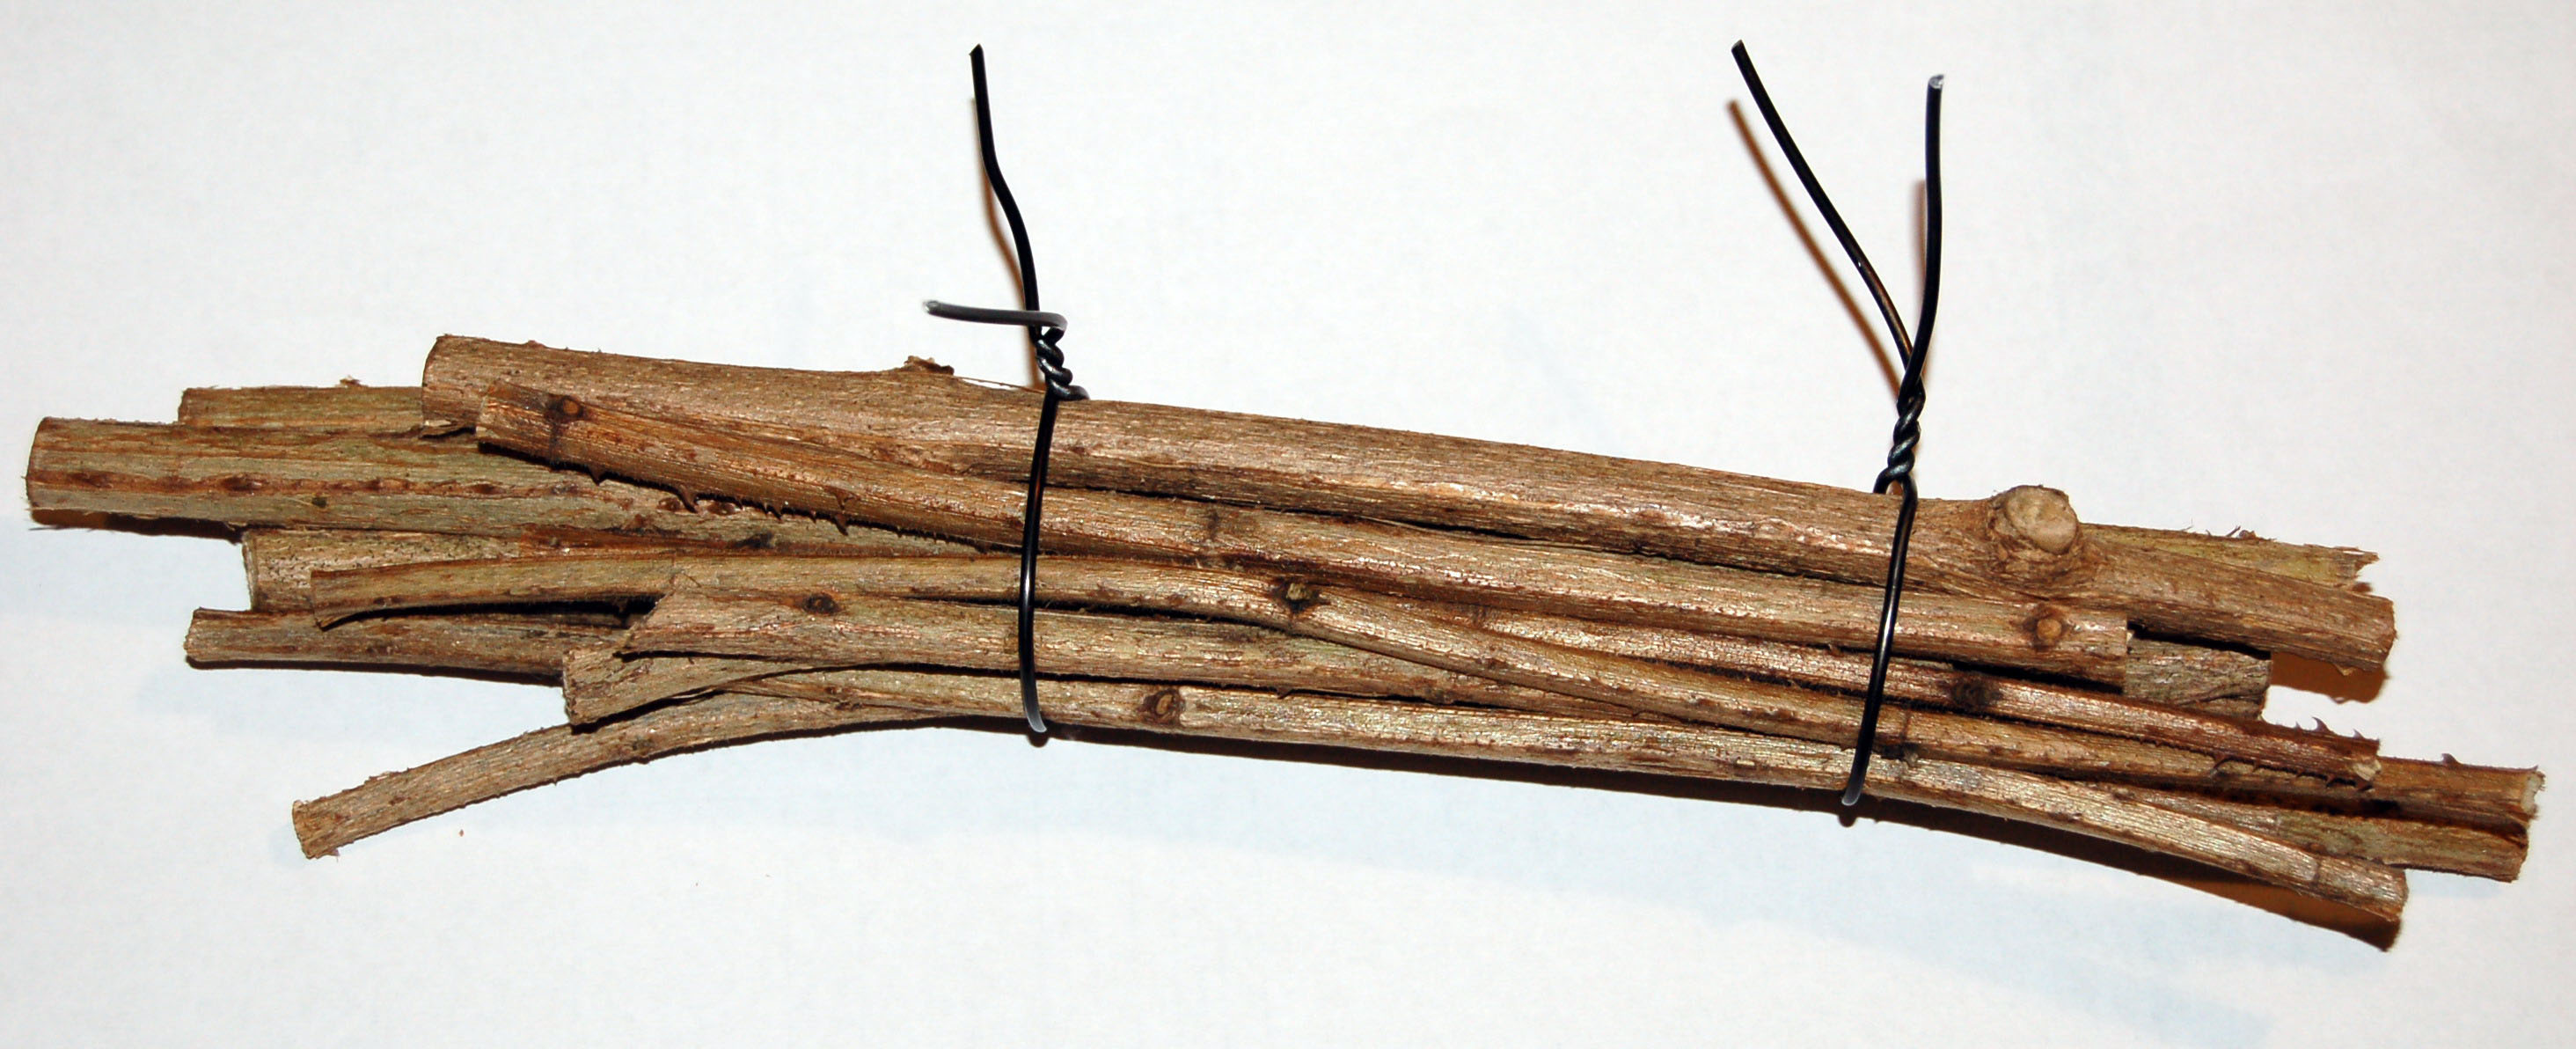 Lantana stems bundled together as a nest for Exoneura spp. bees.